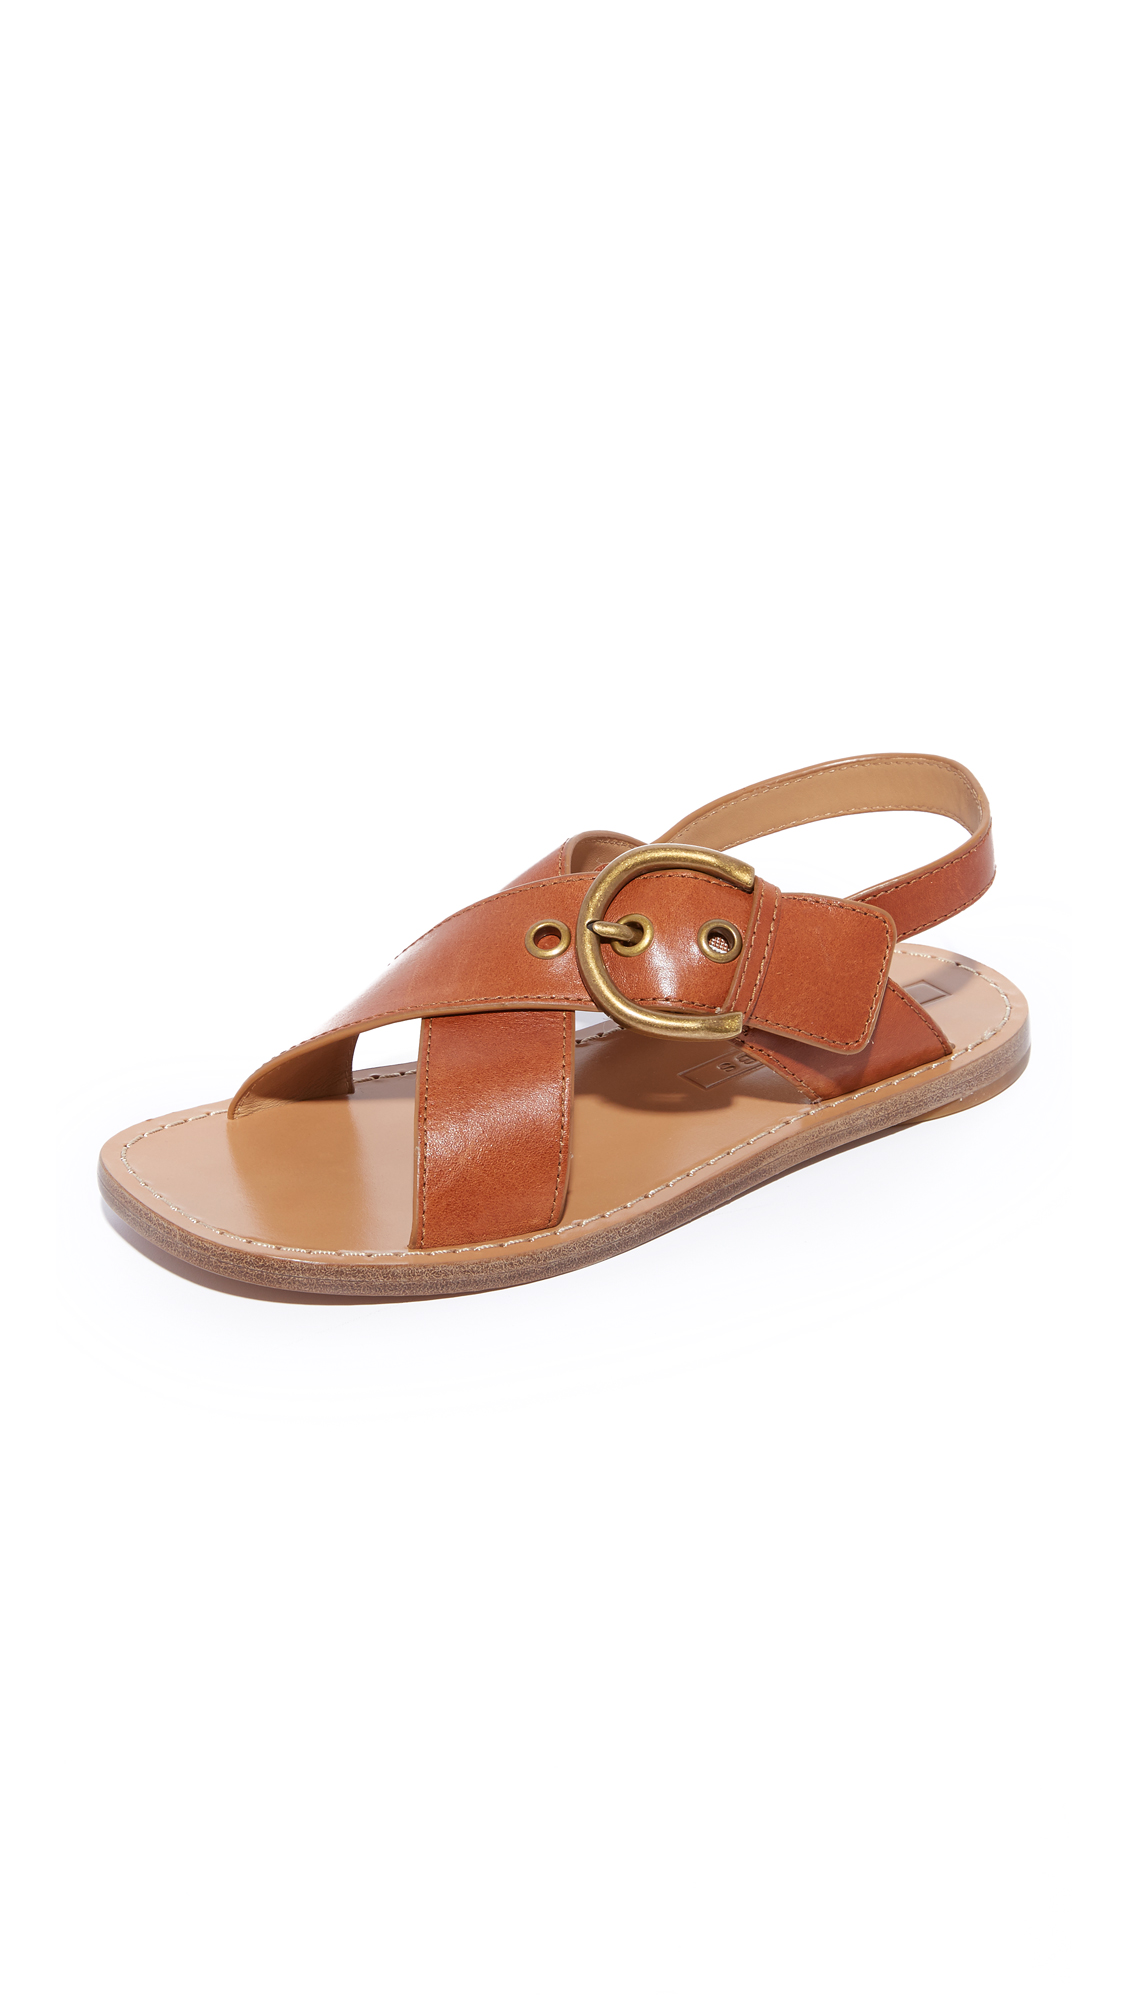 marc jacobs female  marc jacobs patti flat sandals luggage